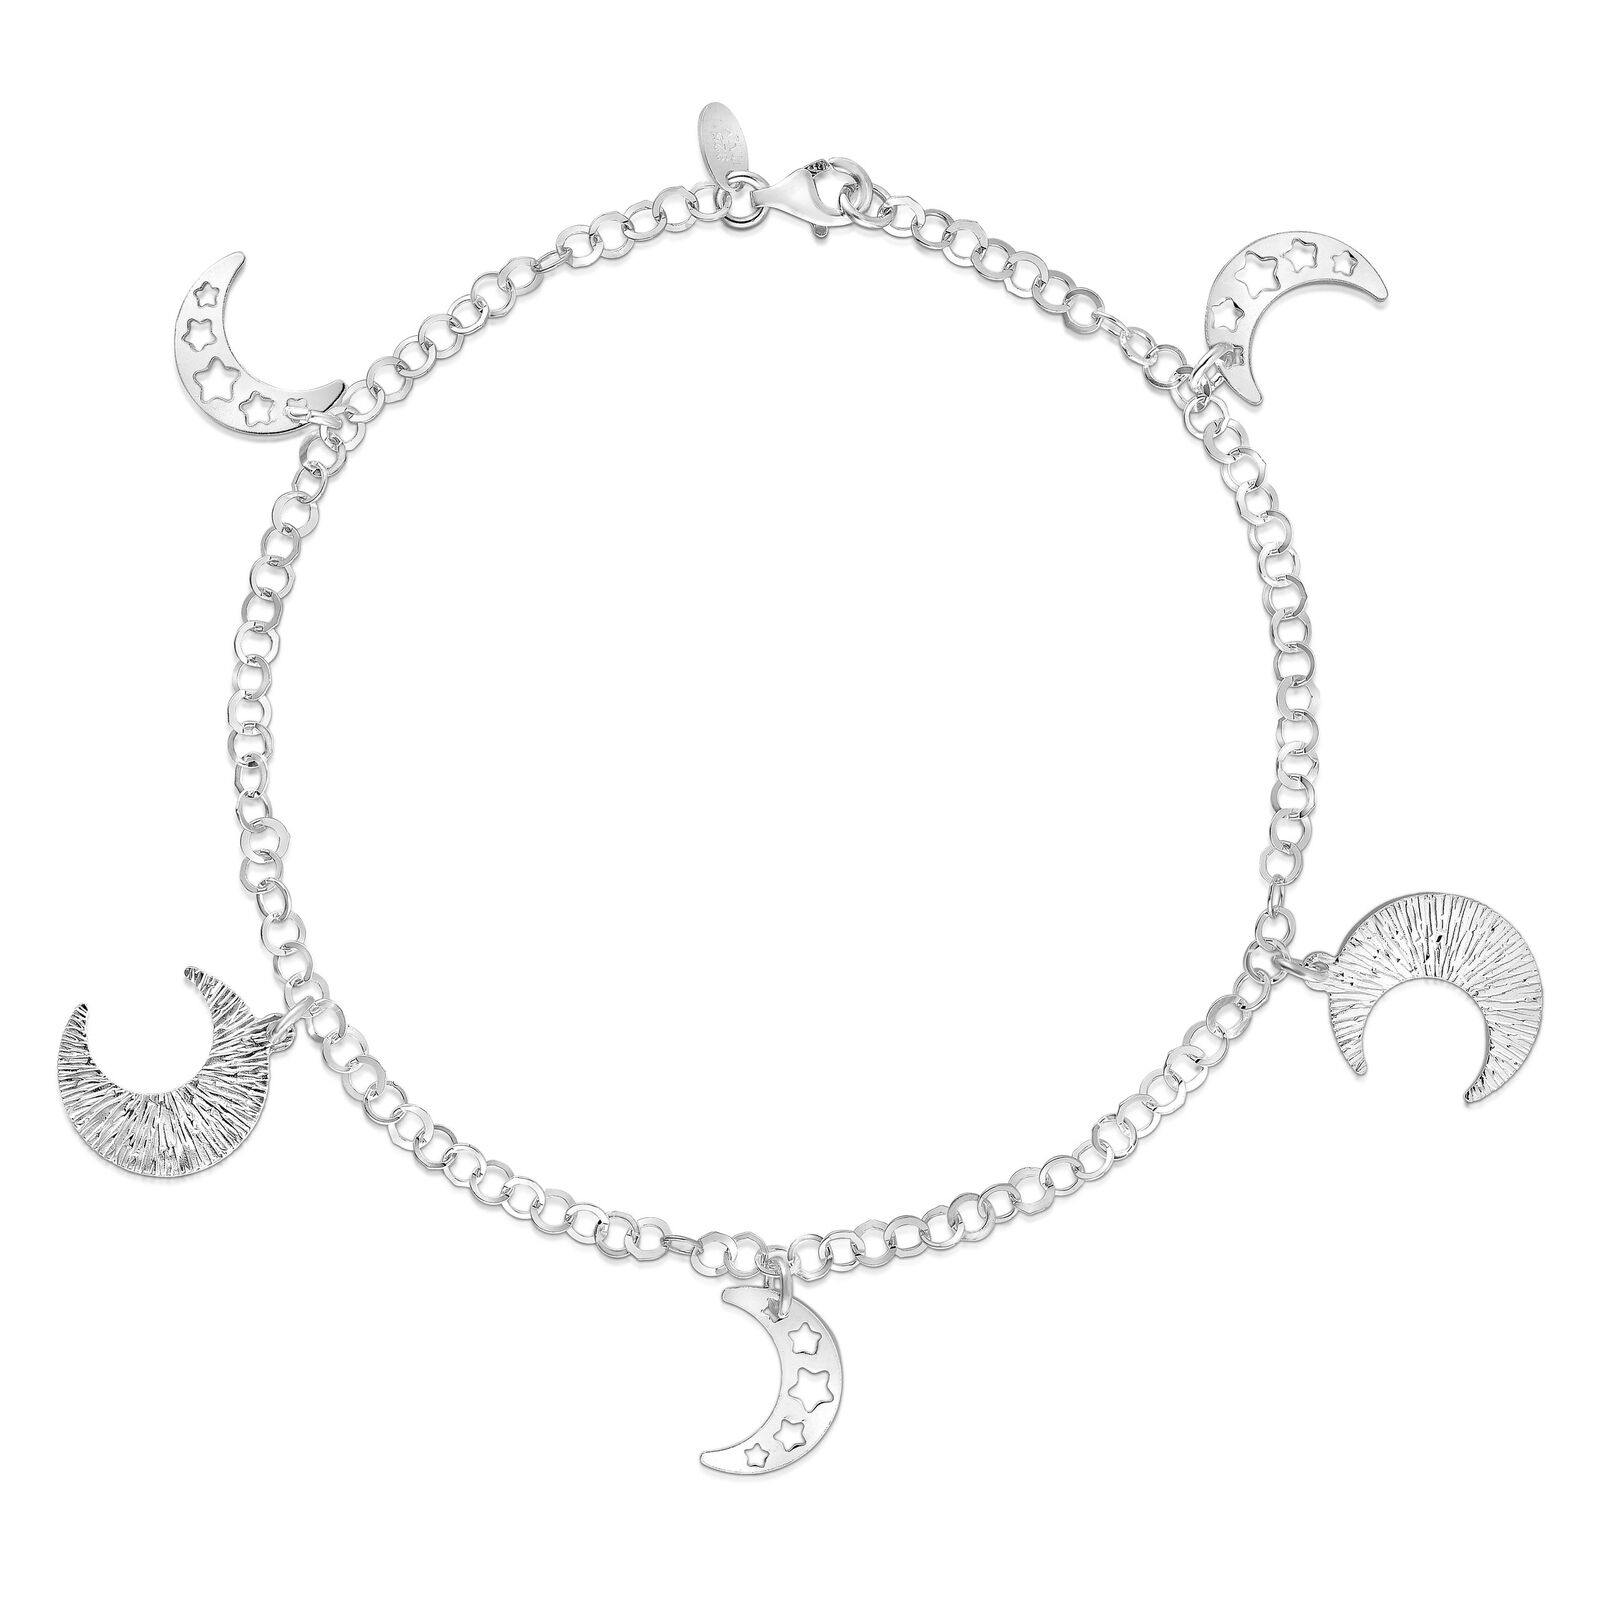 Italy Design Jewelry Details About 925 Sterling Silver Moon And Stars Design Anklet Stamped 925 Italy